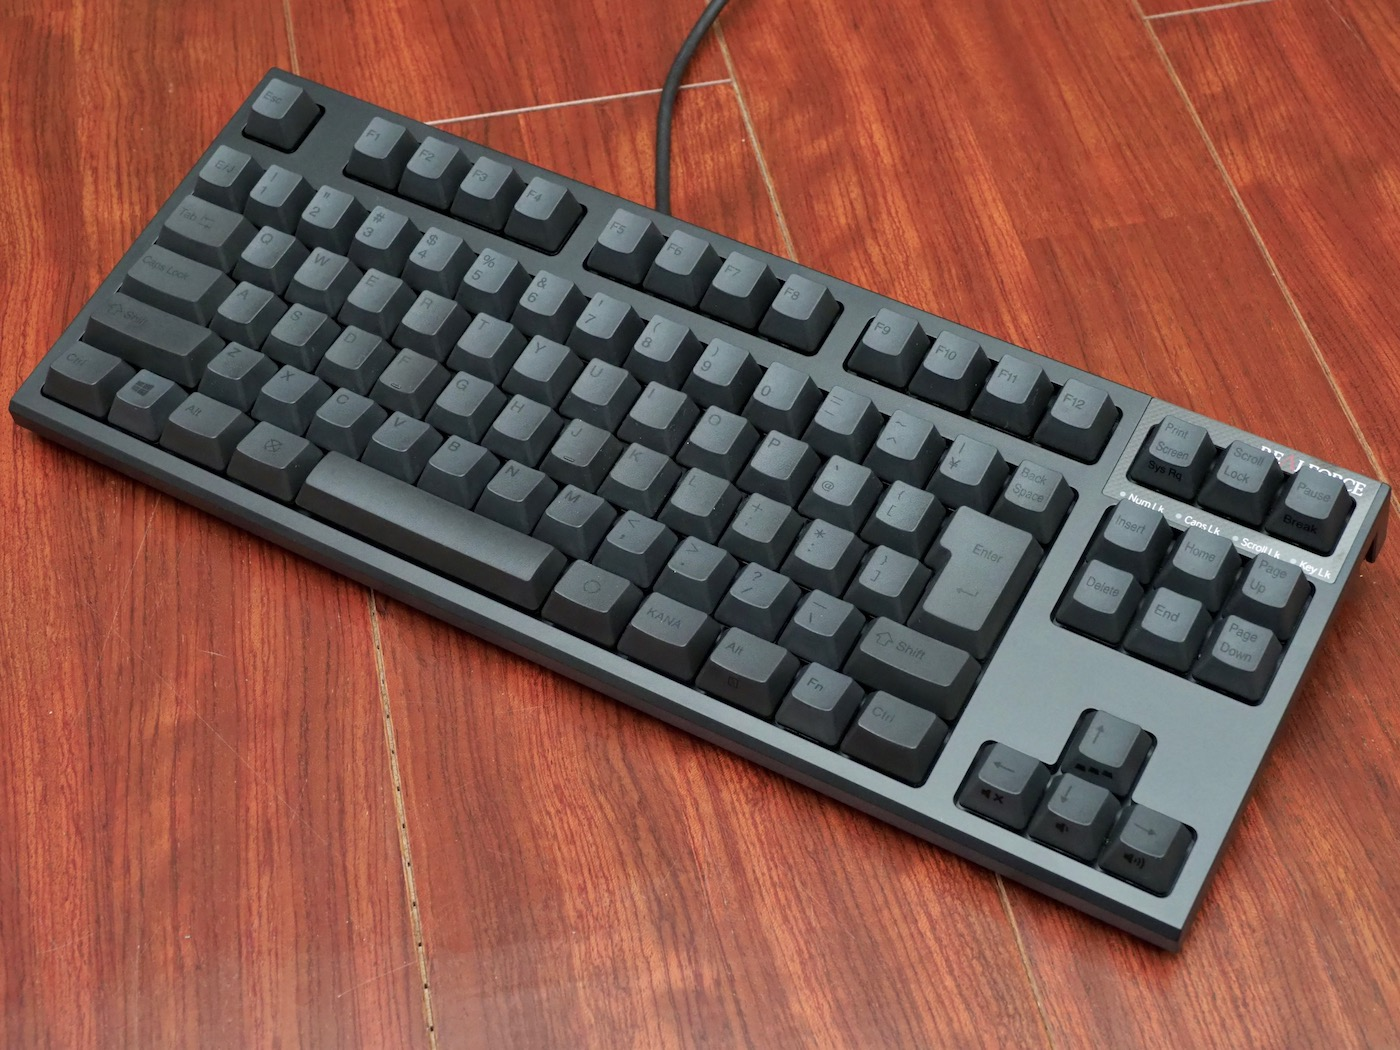 Realforce r2 pfu limited edition 00016